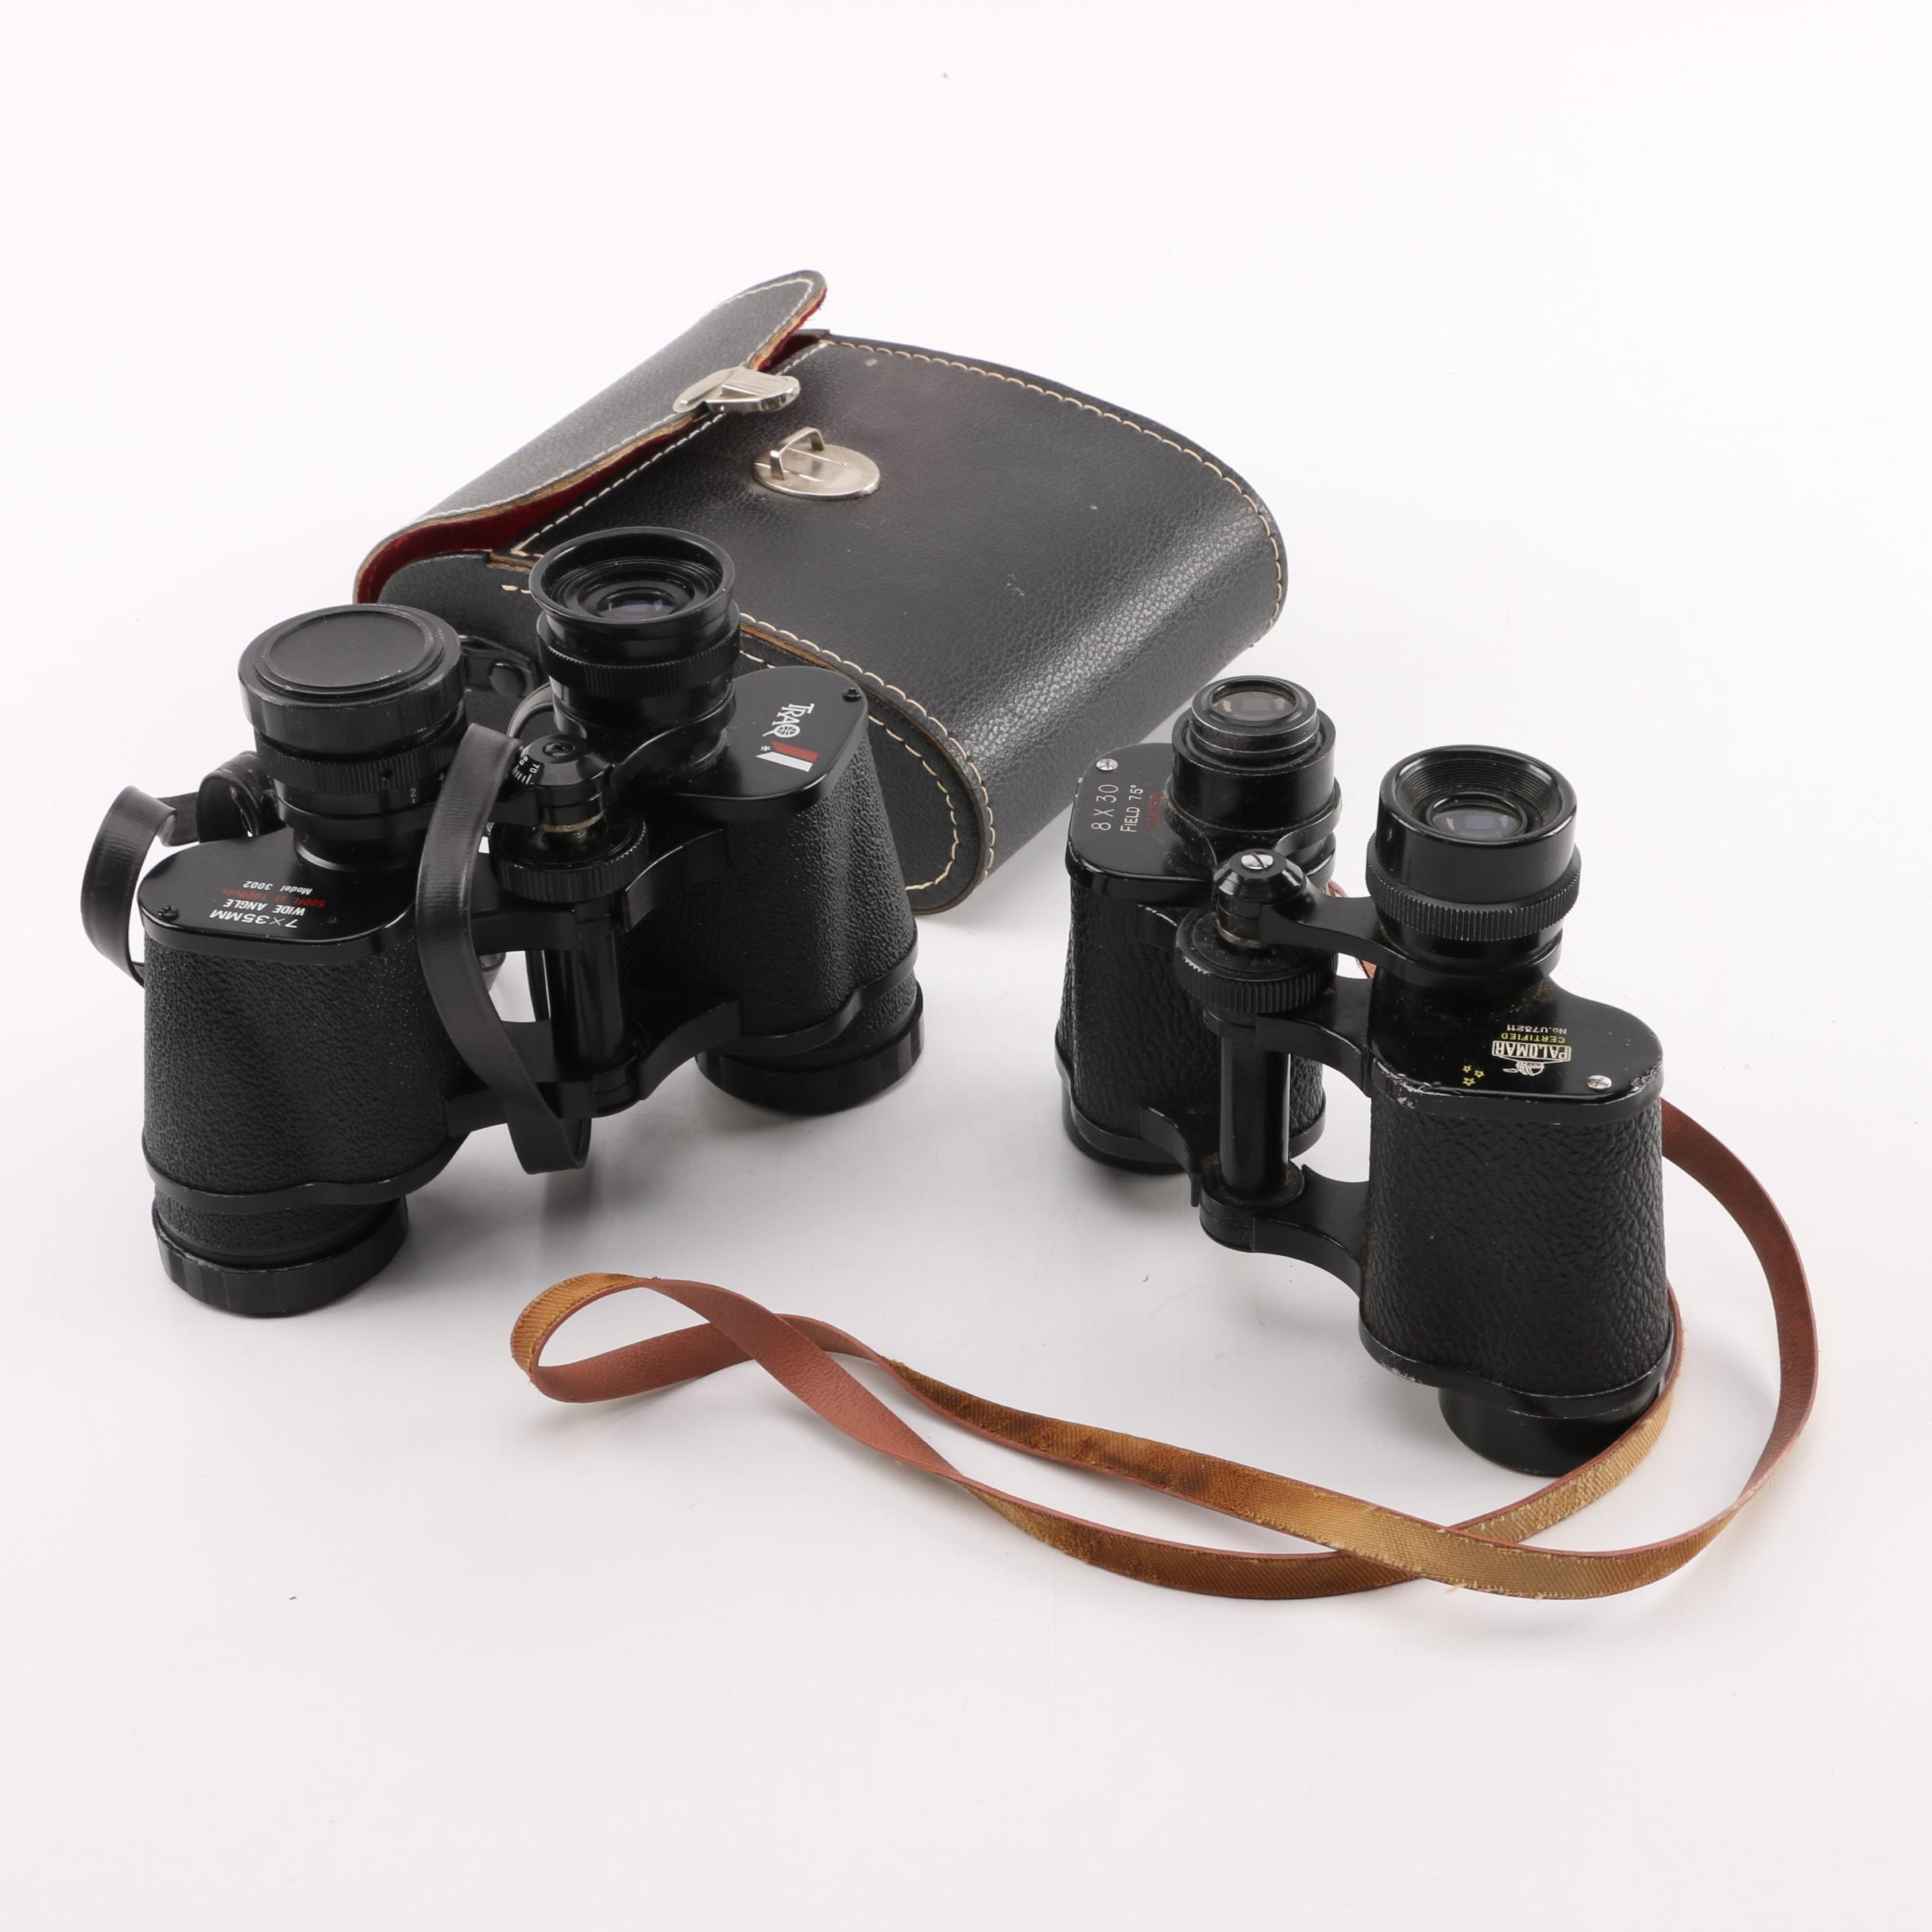 Palomar and Trao Binoculars with Case